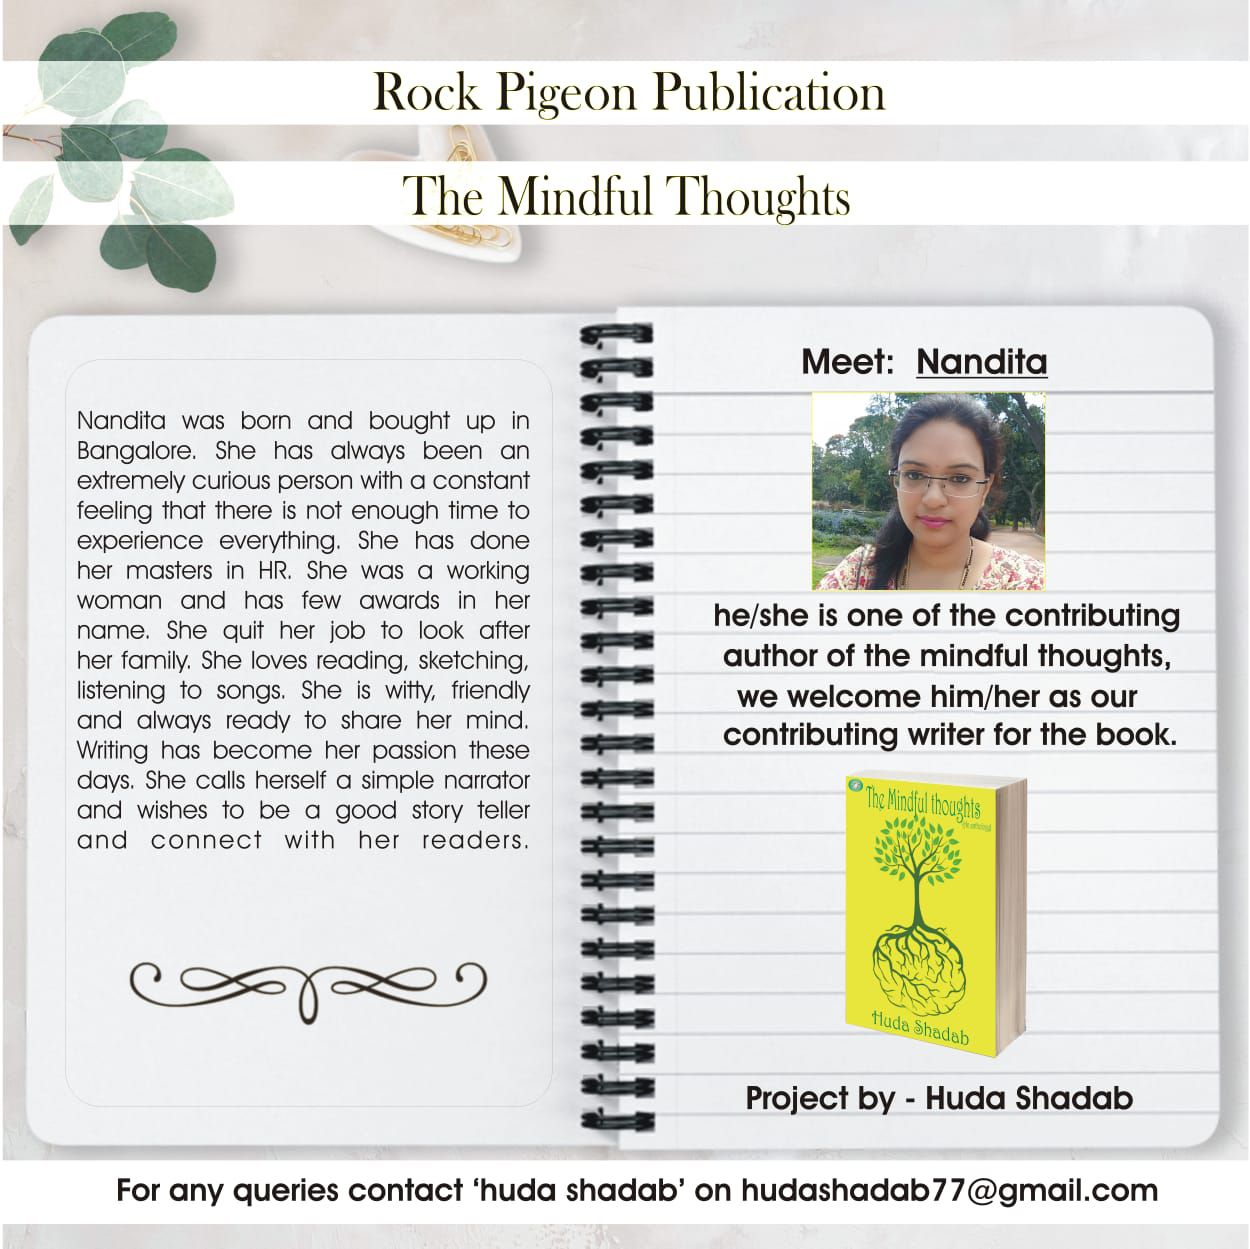 nandita's first published story